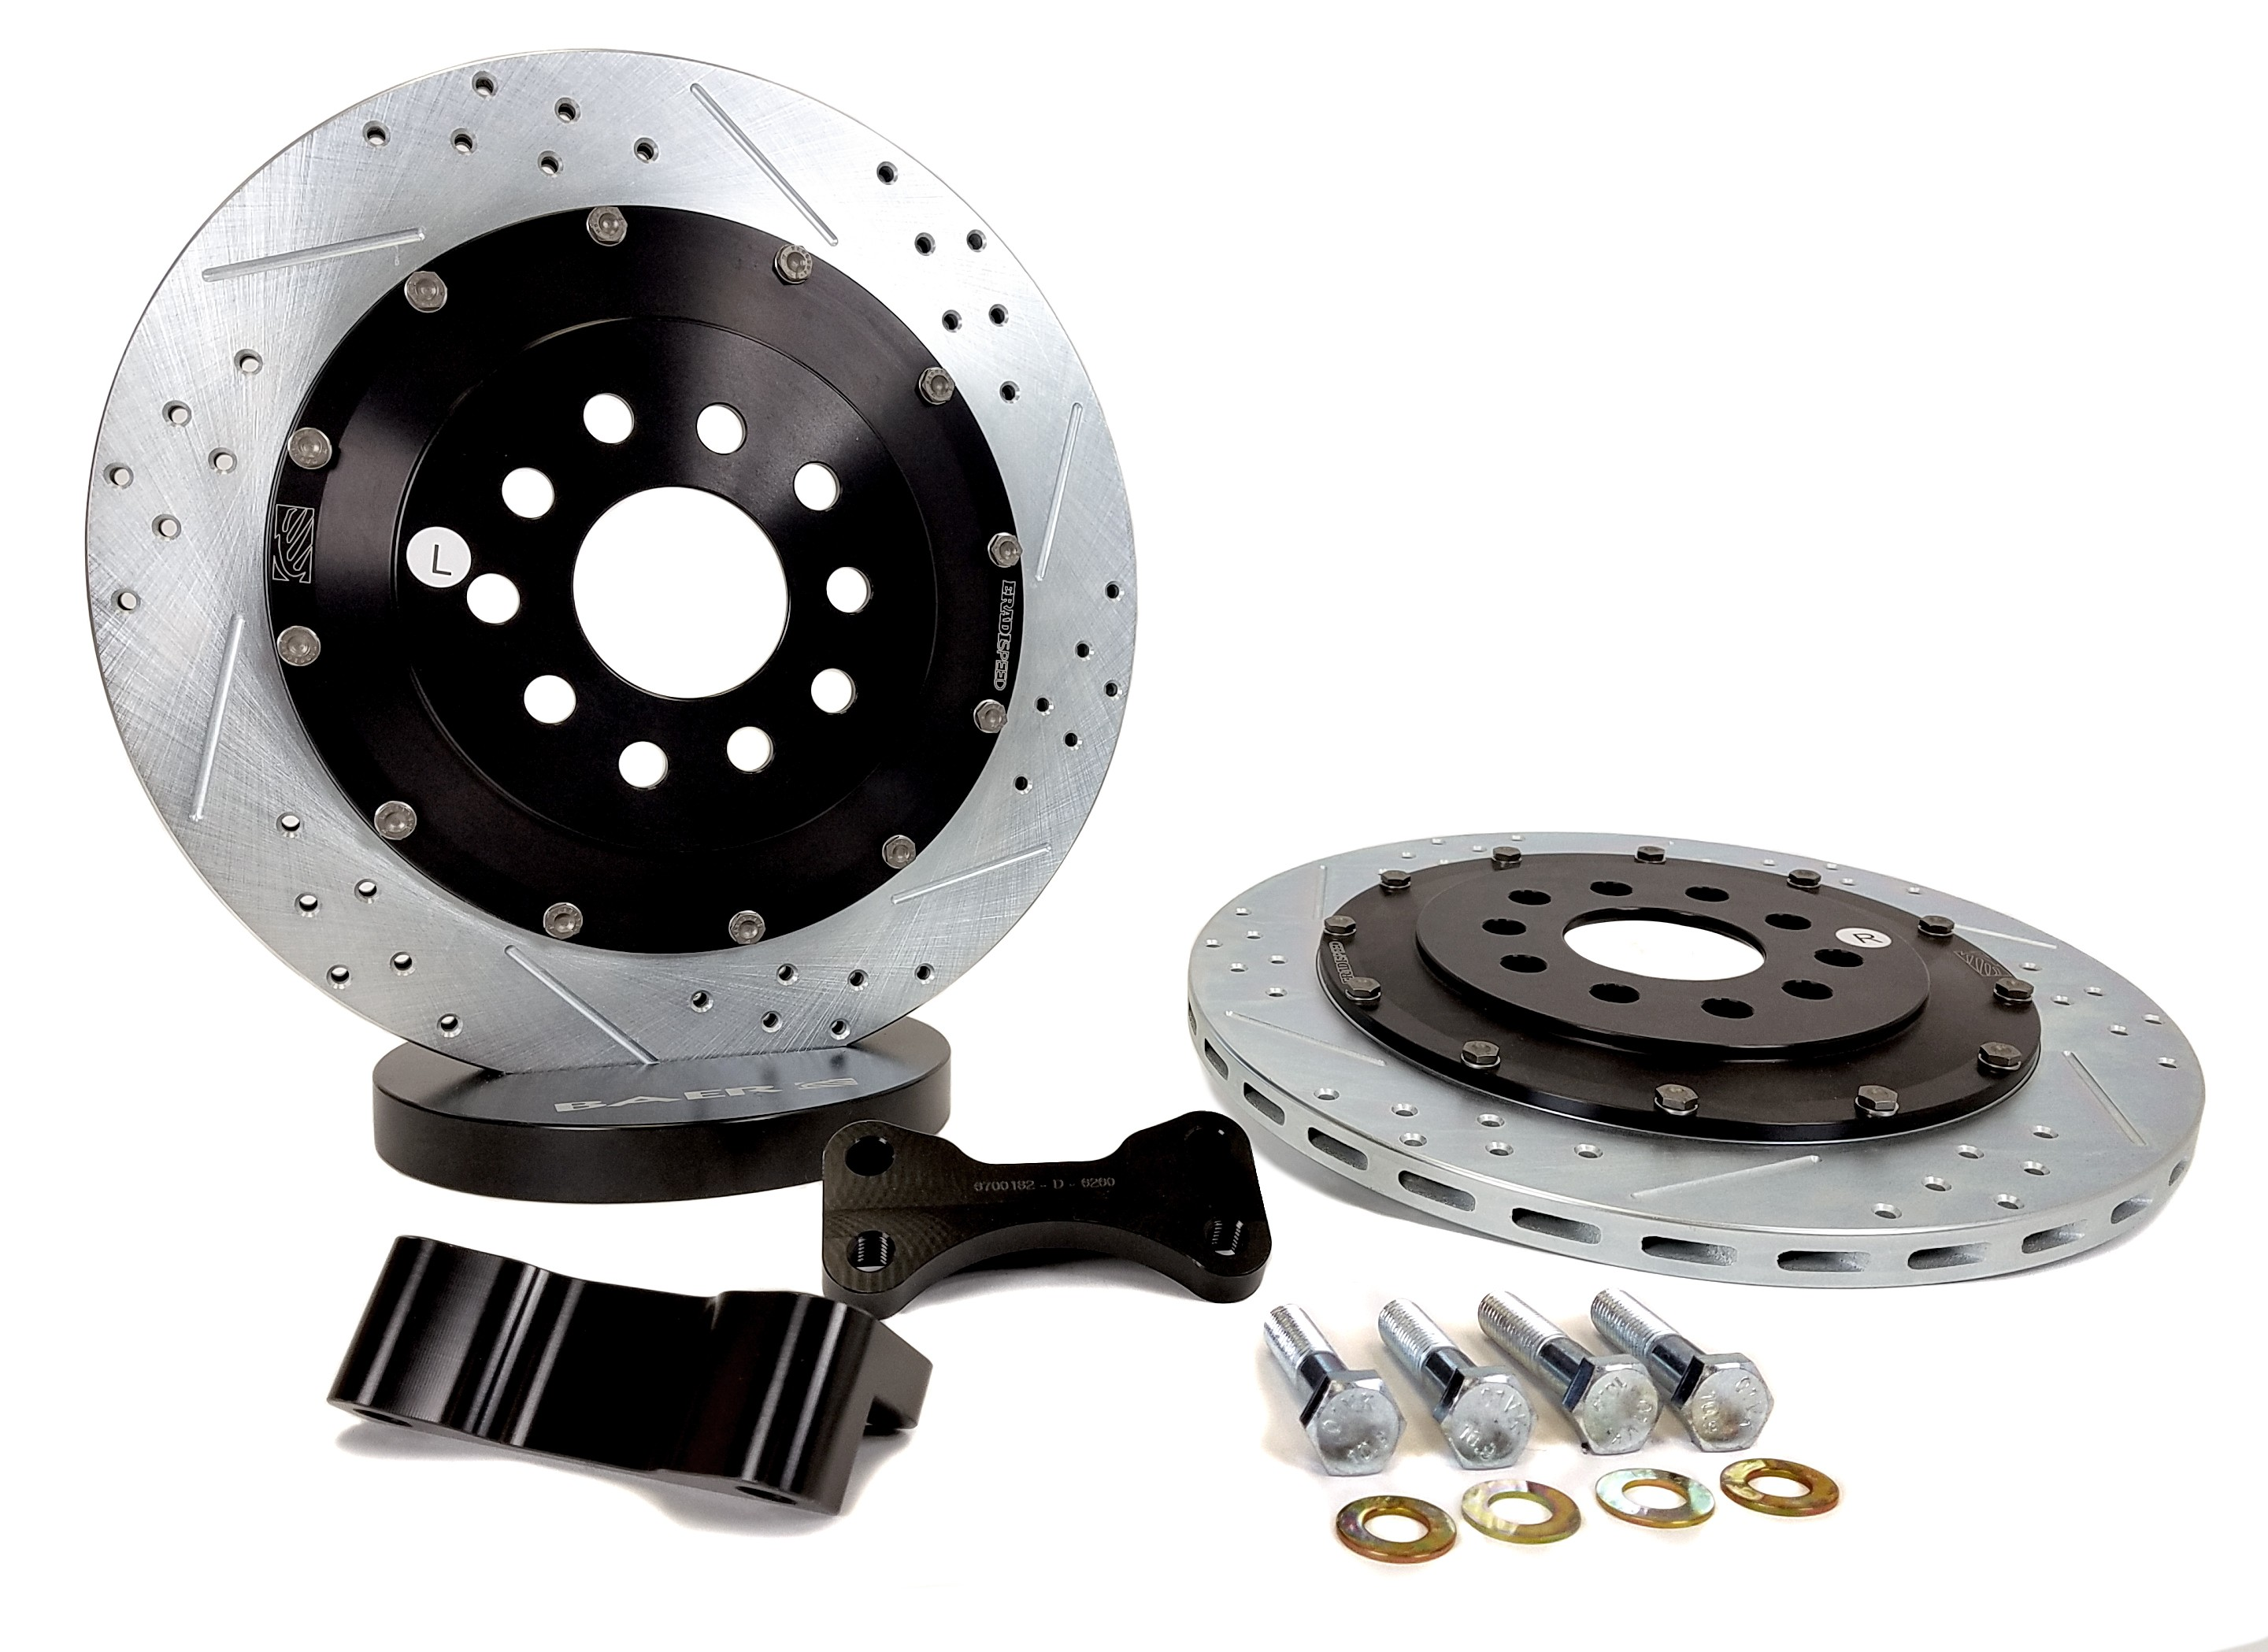 "Rear 14"" 2005-2014 Rear EradiSpeed+1 Rotor Upgrade for Ford Mustang"